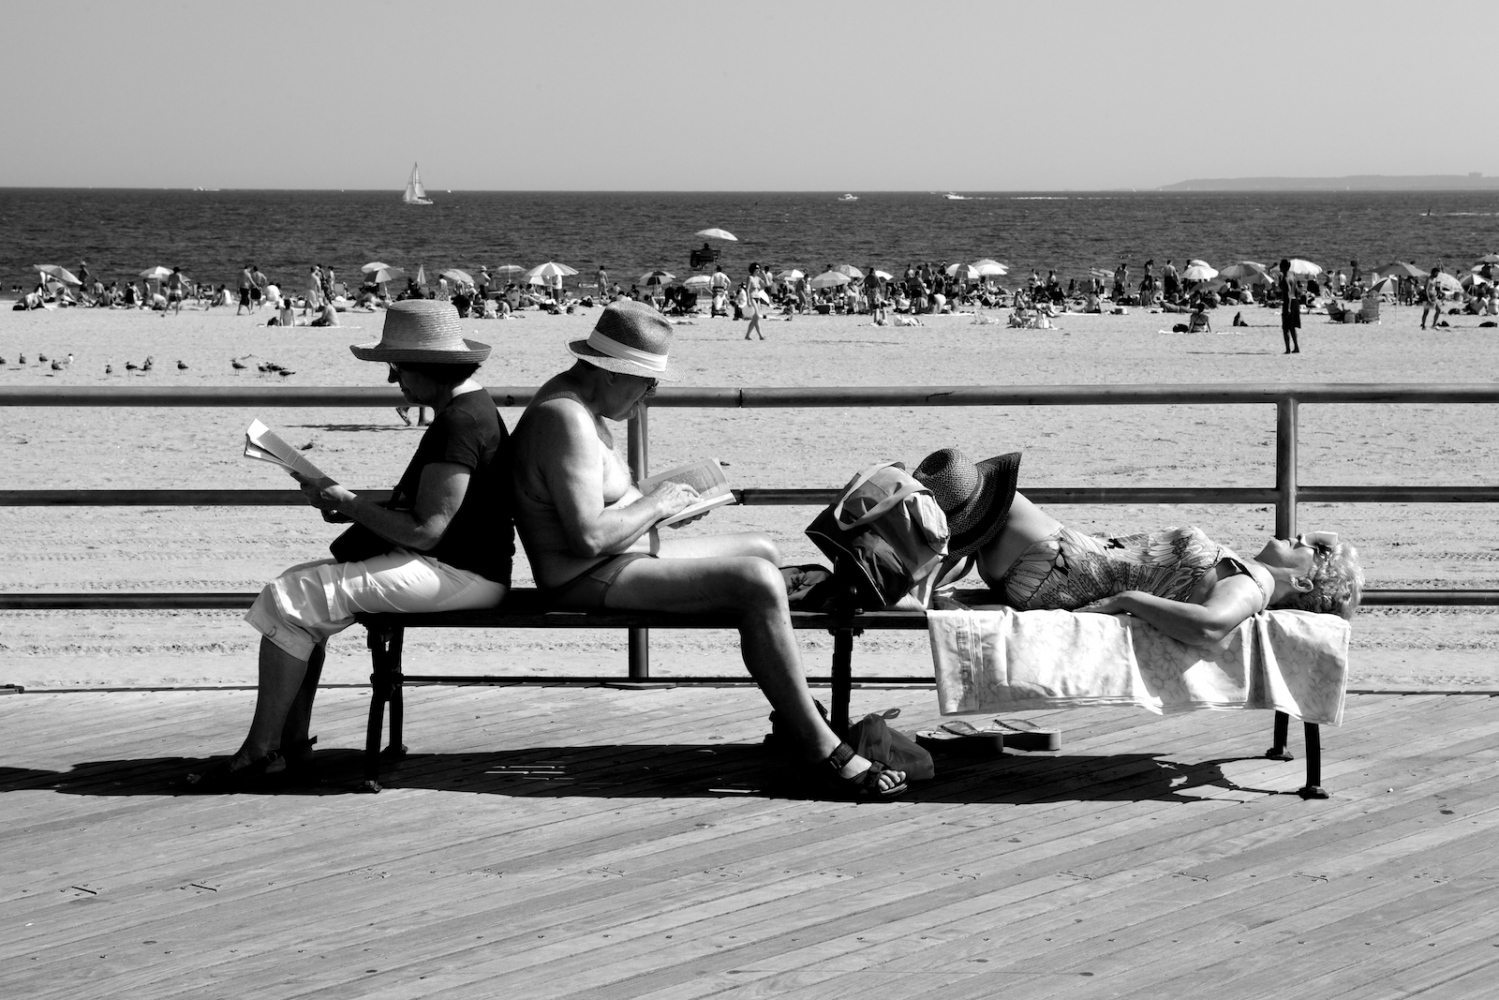 Bookends. Coney Island, NY, Summer 2011